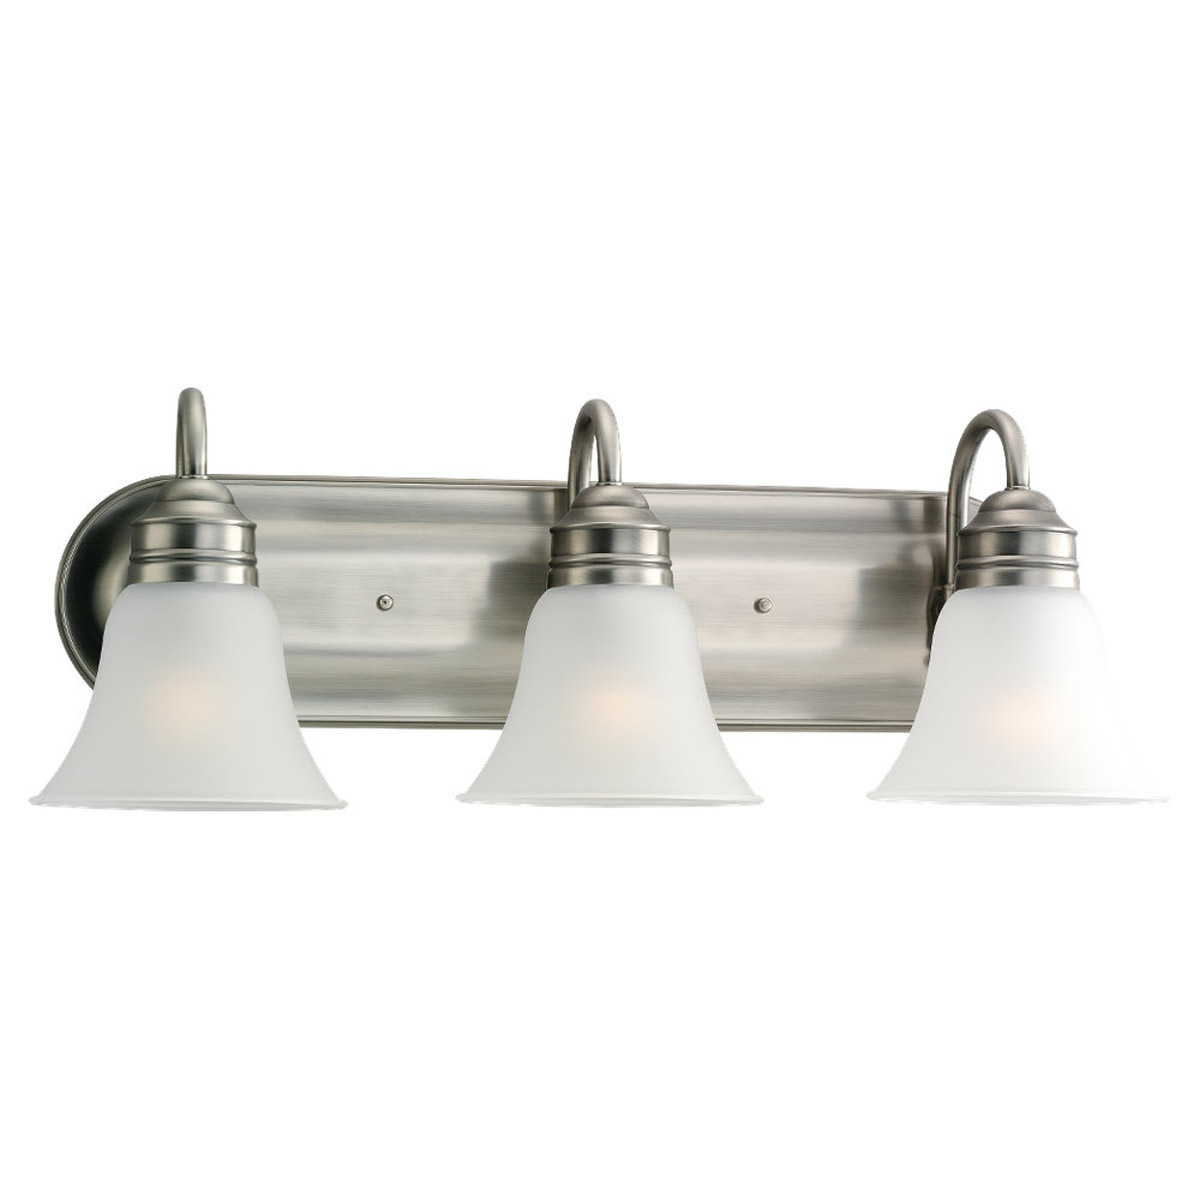 Sea Gull Lighting Gladstone 3 Light Bath Vanity in Antique Brushed Nickel 49852BLE-965